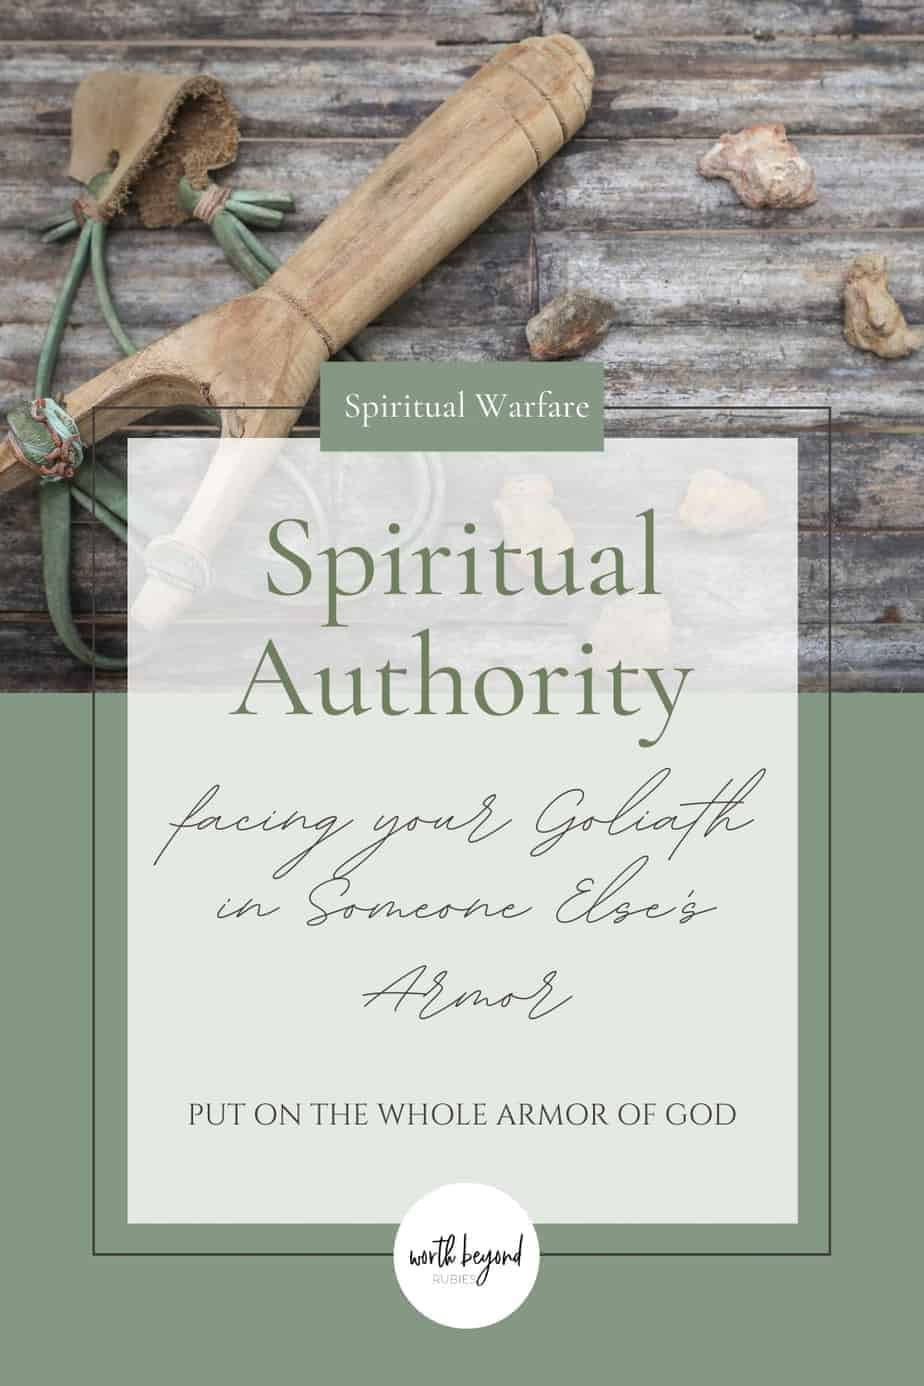 A slingshot and stones and a text overlay that says Spiritual Authority - Facing Your Goliath in Someone Else's Armor - Put on the Whole Armor of God